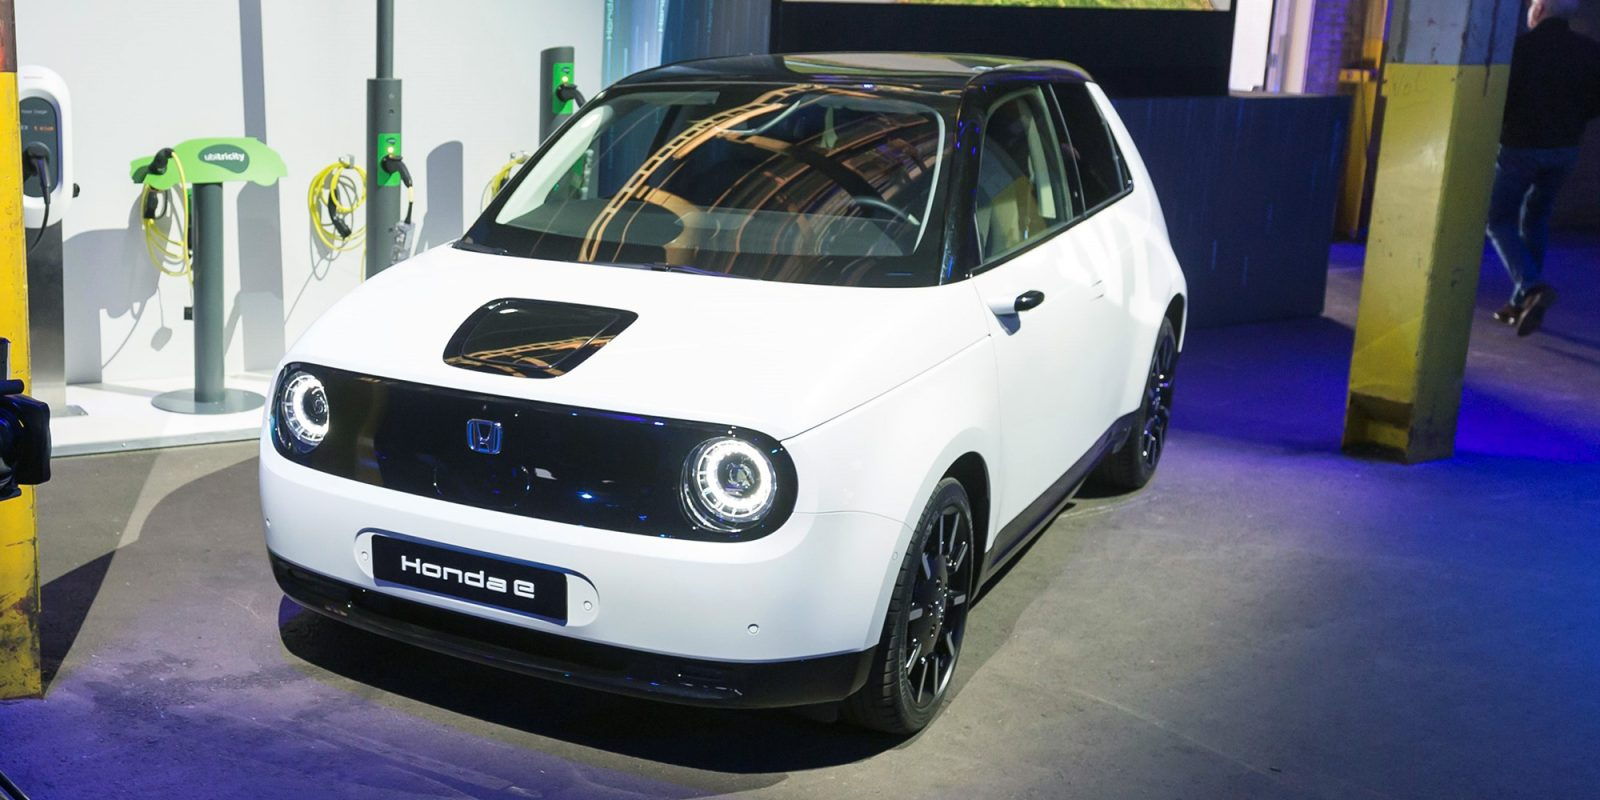 Honda works on second EV, quits diesel, and puts hydrogen on hold